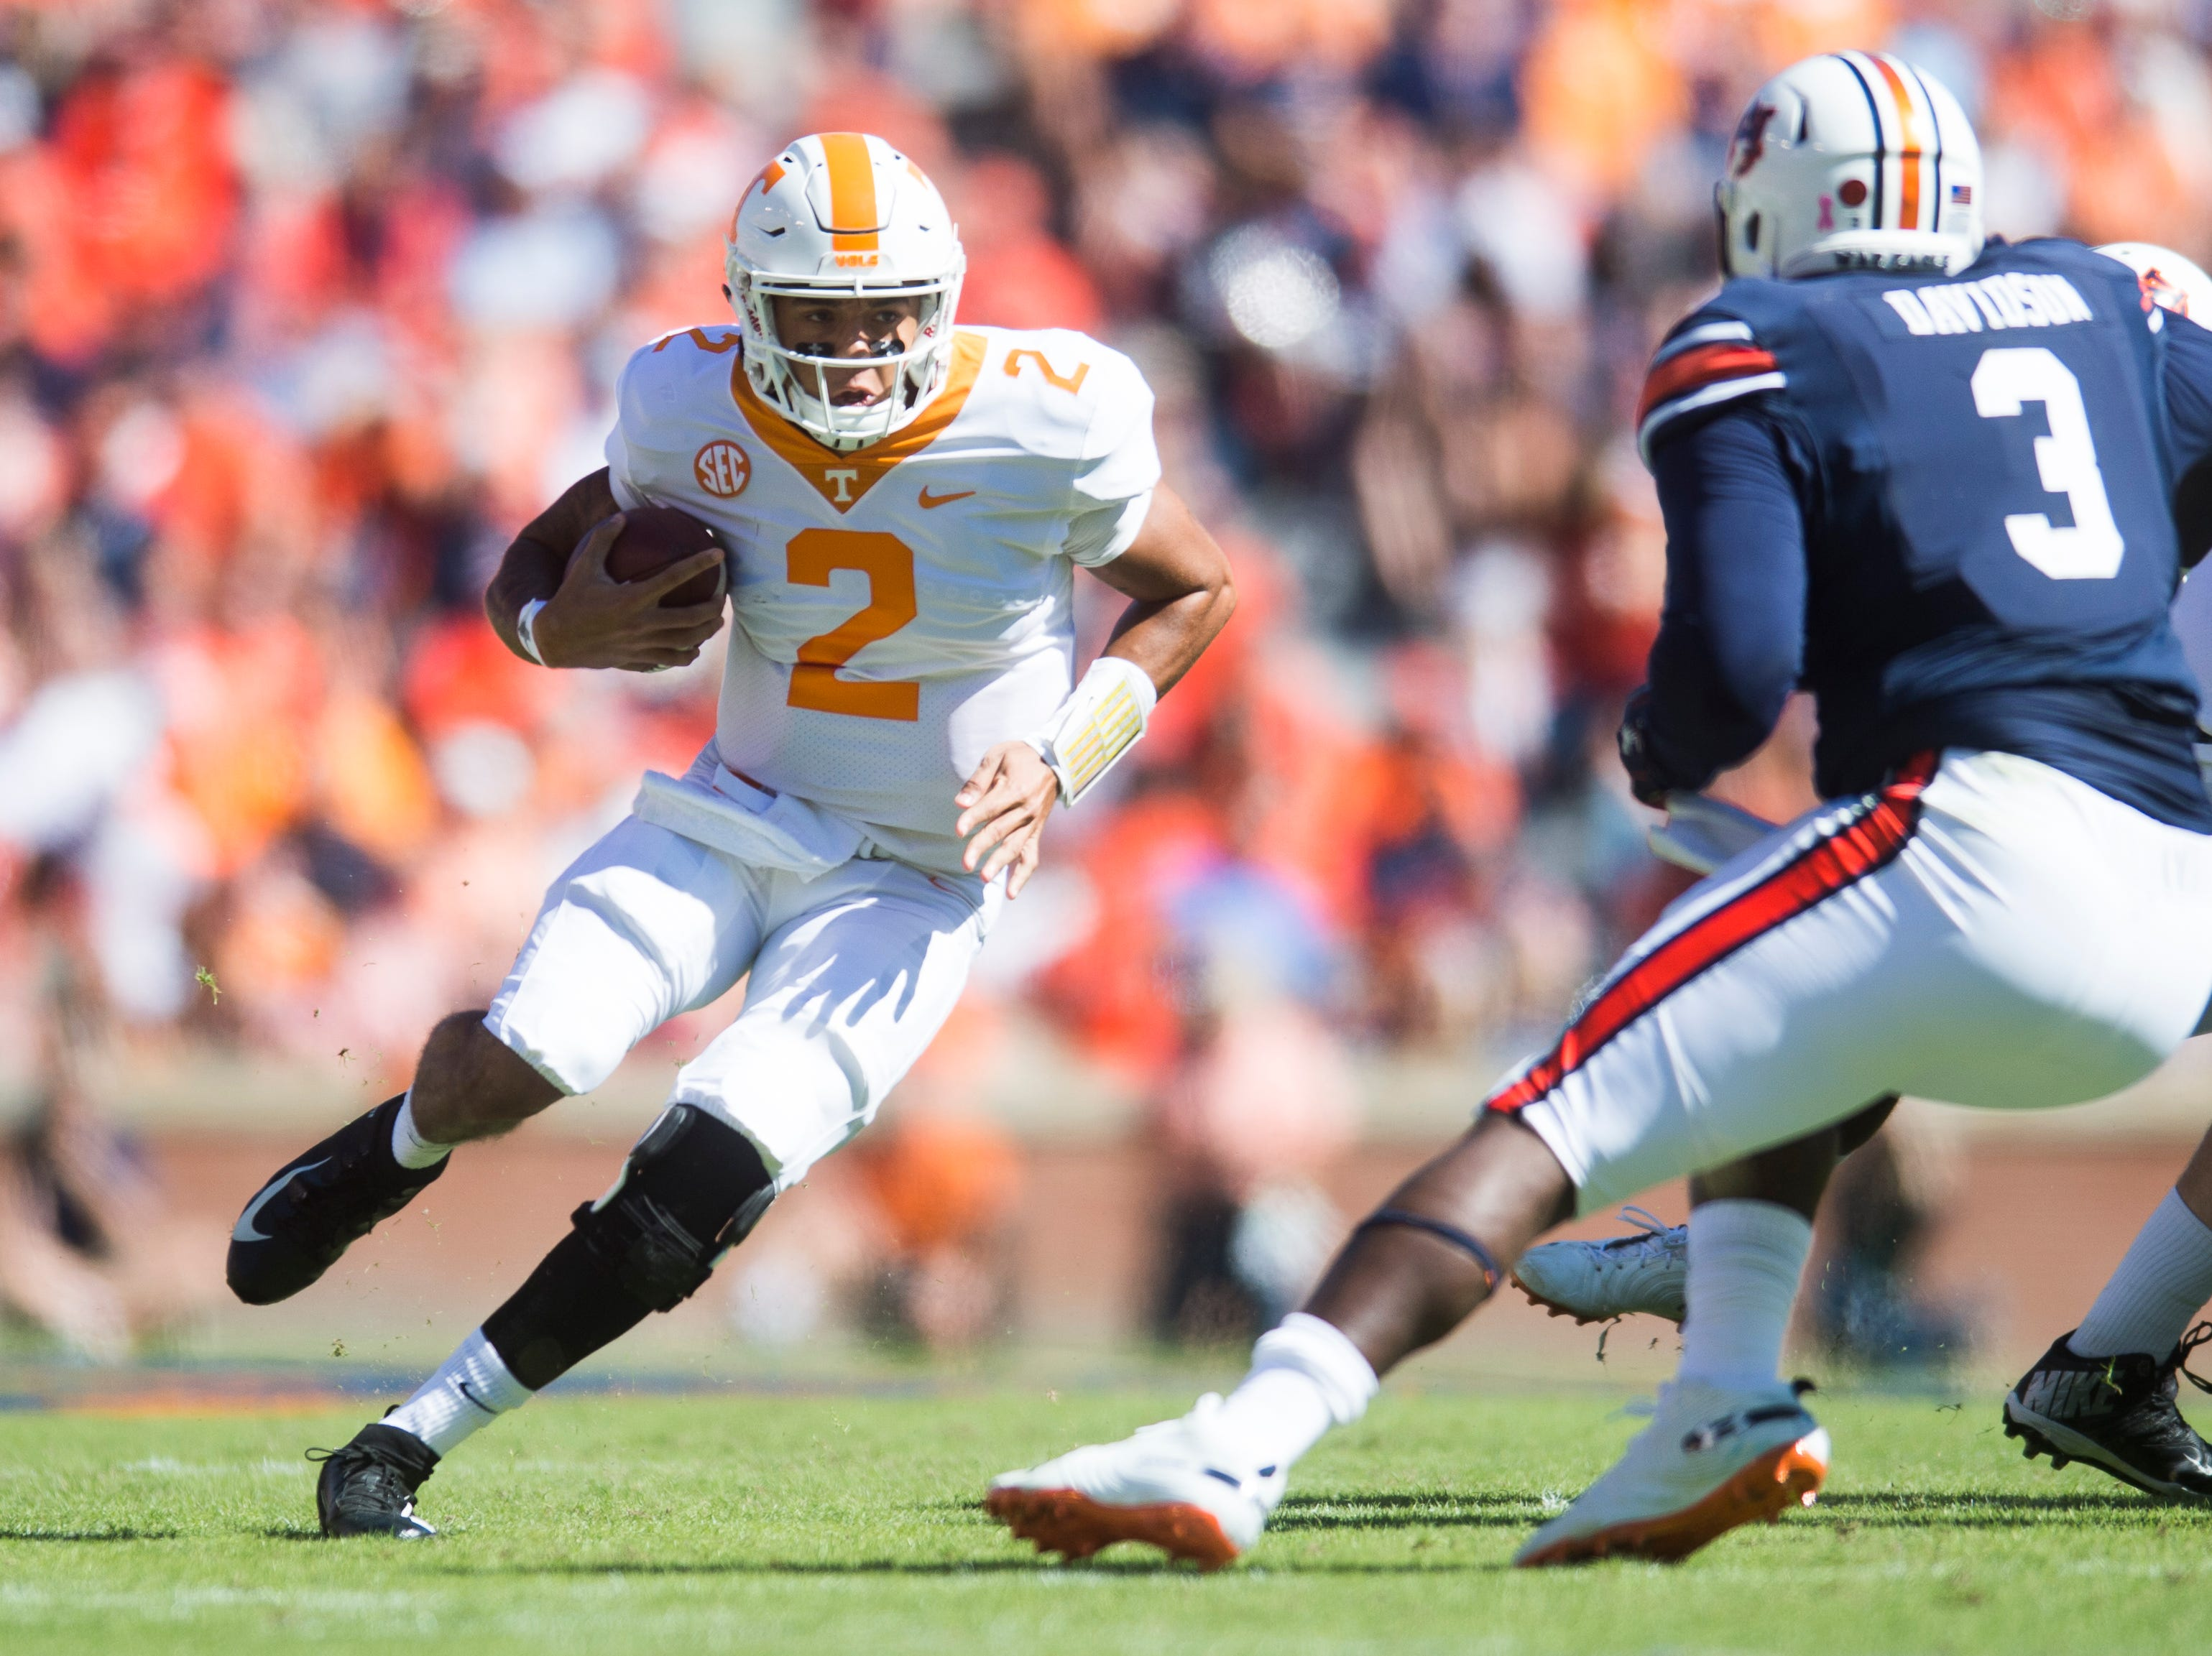 Tennessee quarterback Jarrett Guarantano (2) runs with the ball during a game between Tennessee and Auburn at Jordan-Hare Stadium in Auburn, Alabama on Saturday, October 13, 2018.